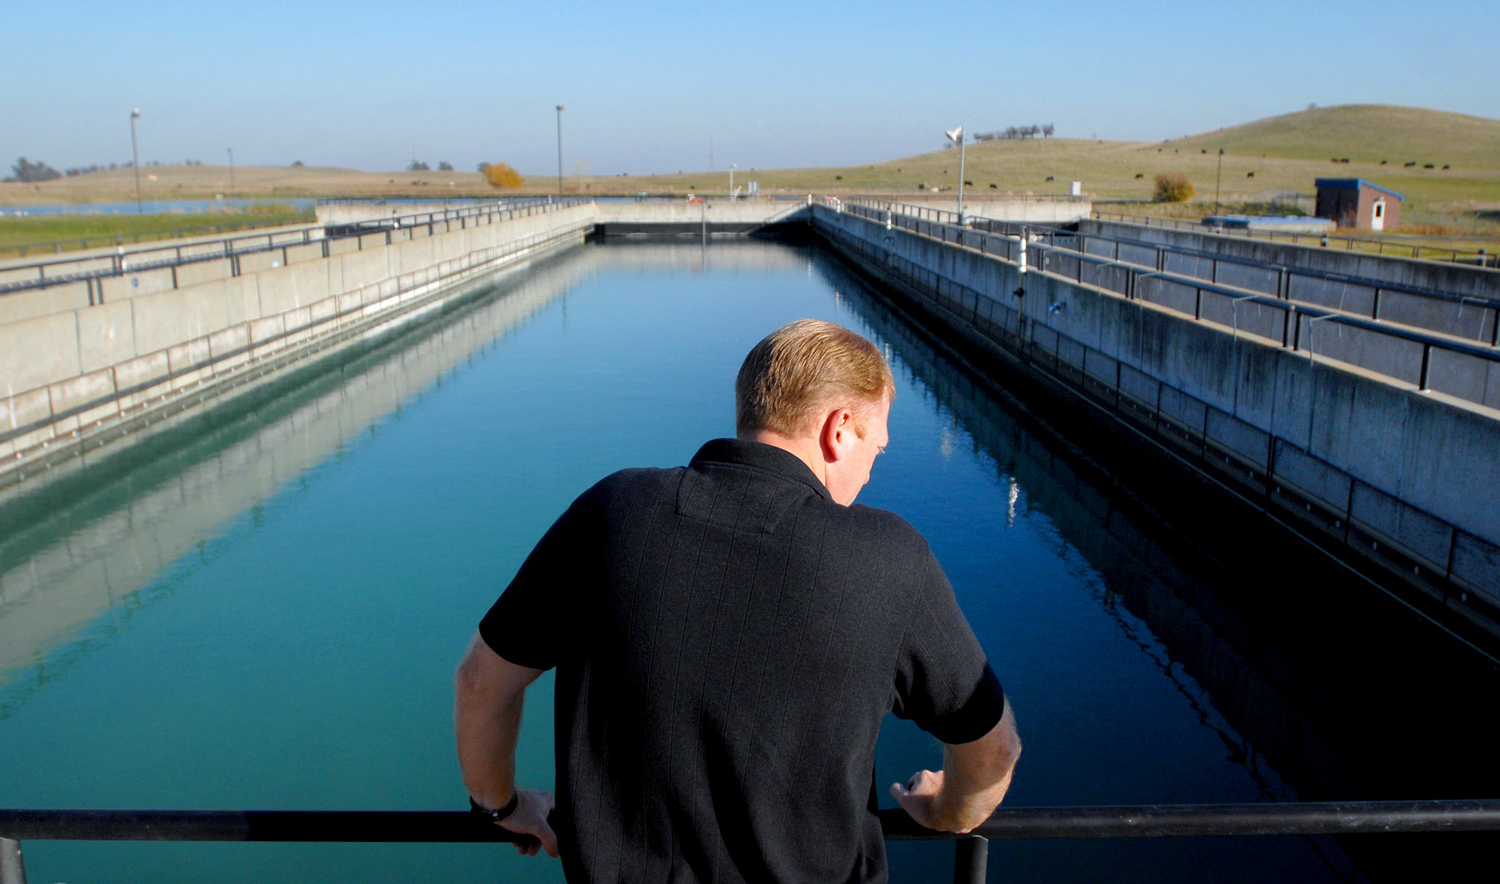 Brandan Hiltman, water treatment supervisor at the North Bay Regional Water Treatment Plant in Fairfield, Calif.